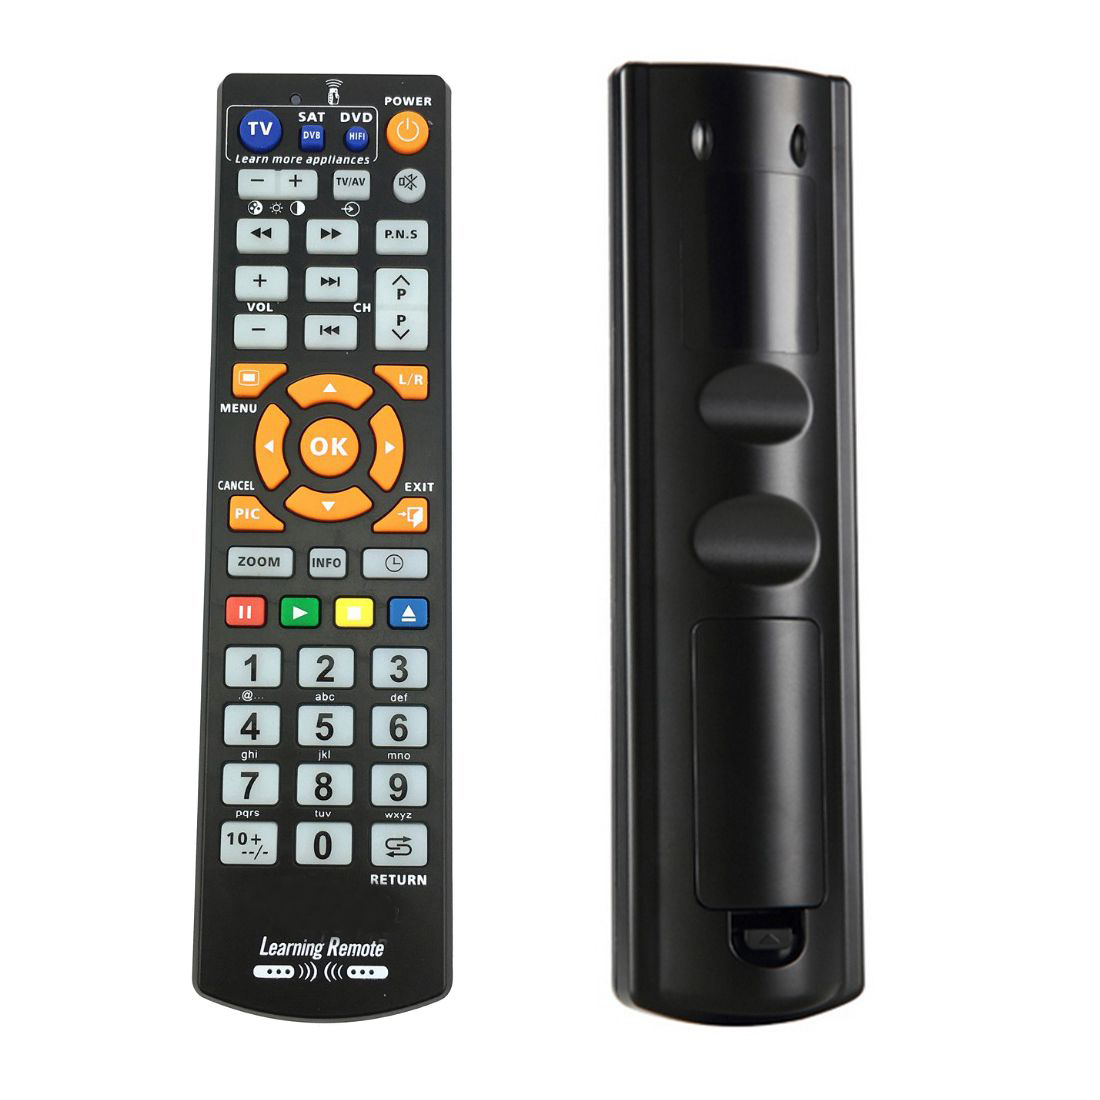 Top Deals L336 Copy Smart Remote Control Controller With Learn Function For TV CBL DVD SAT learning